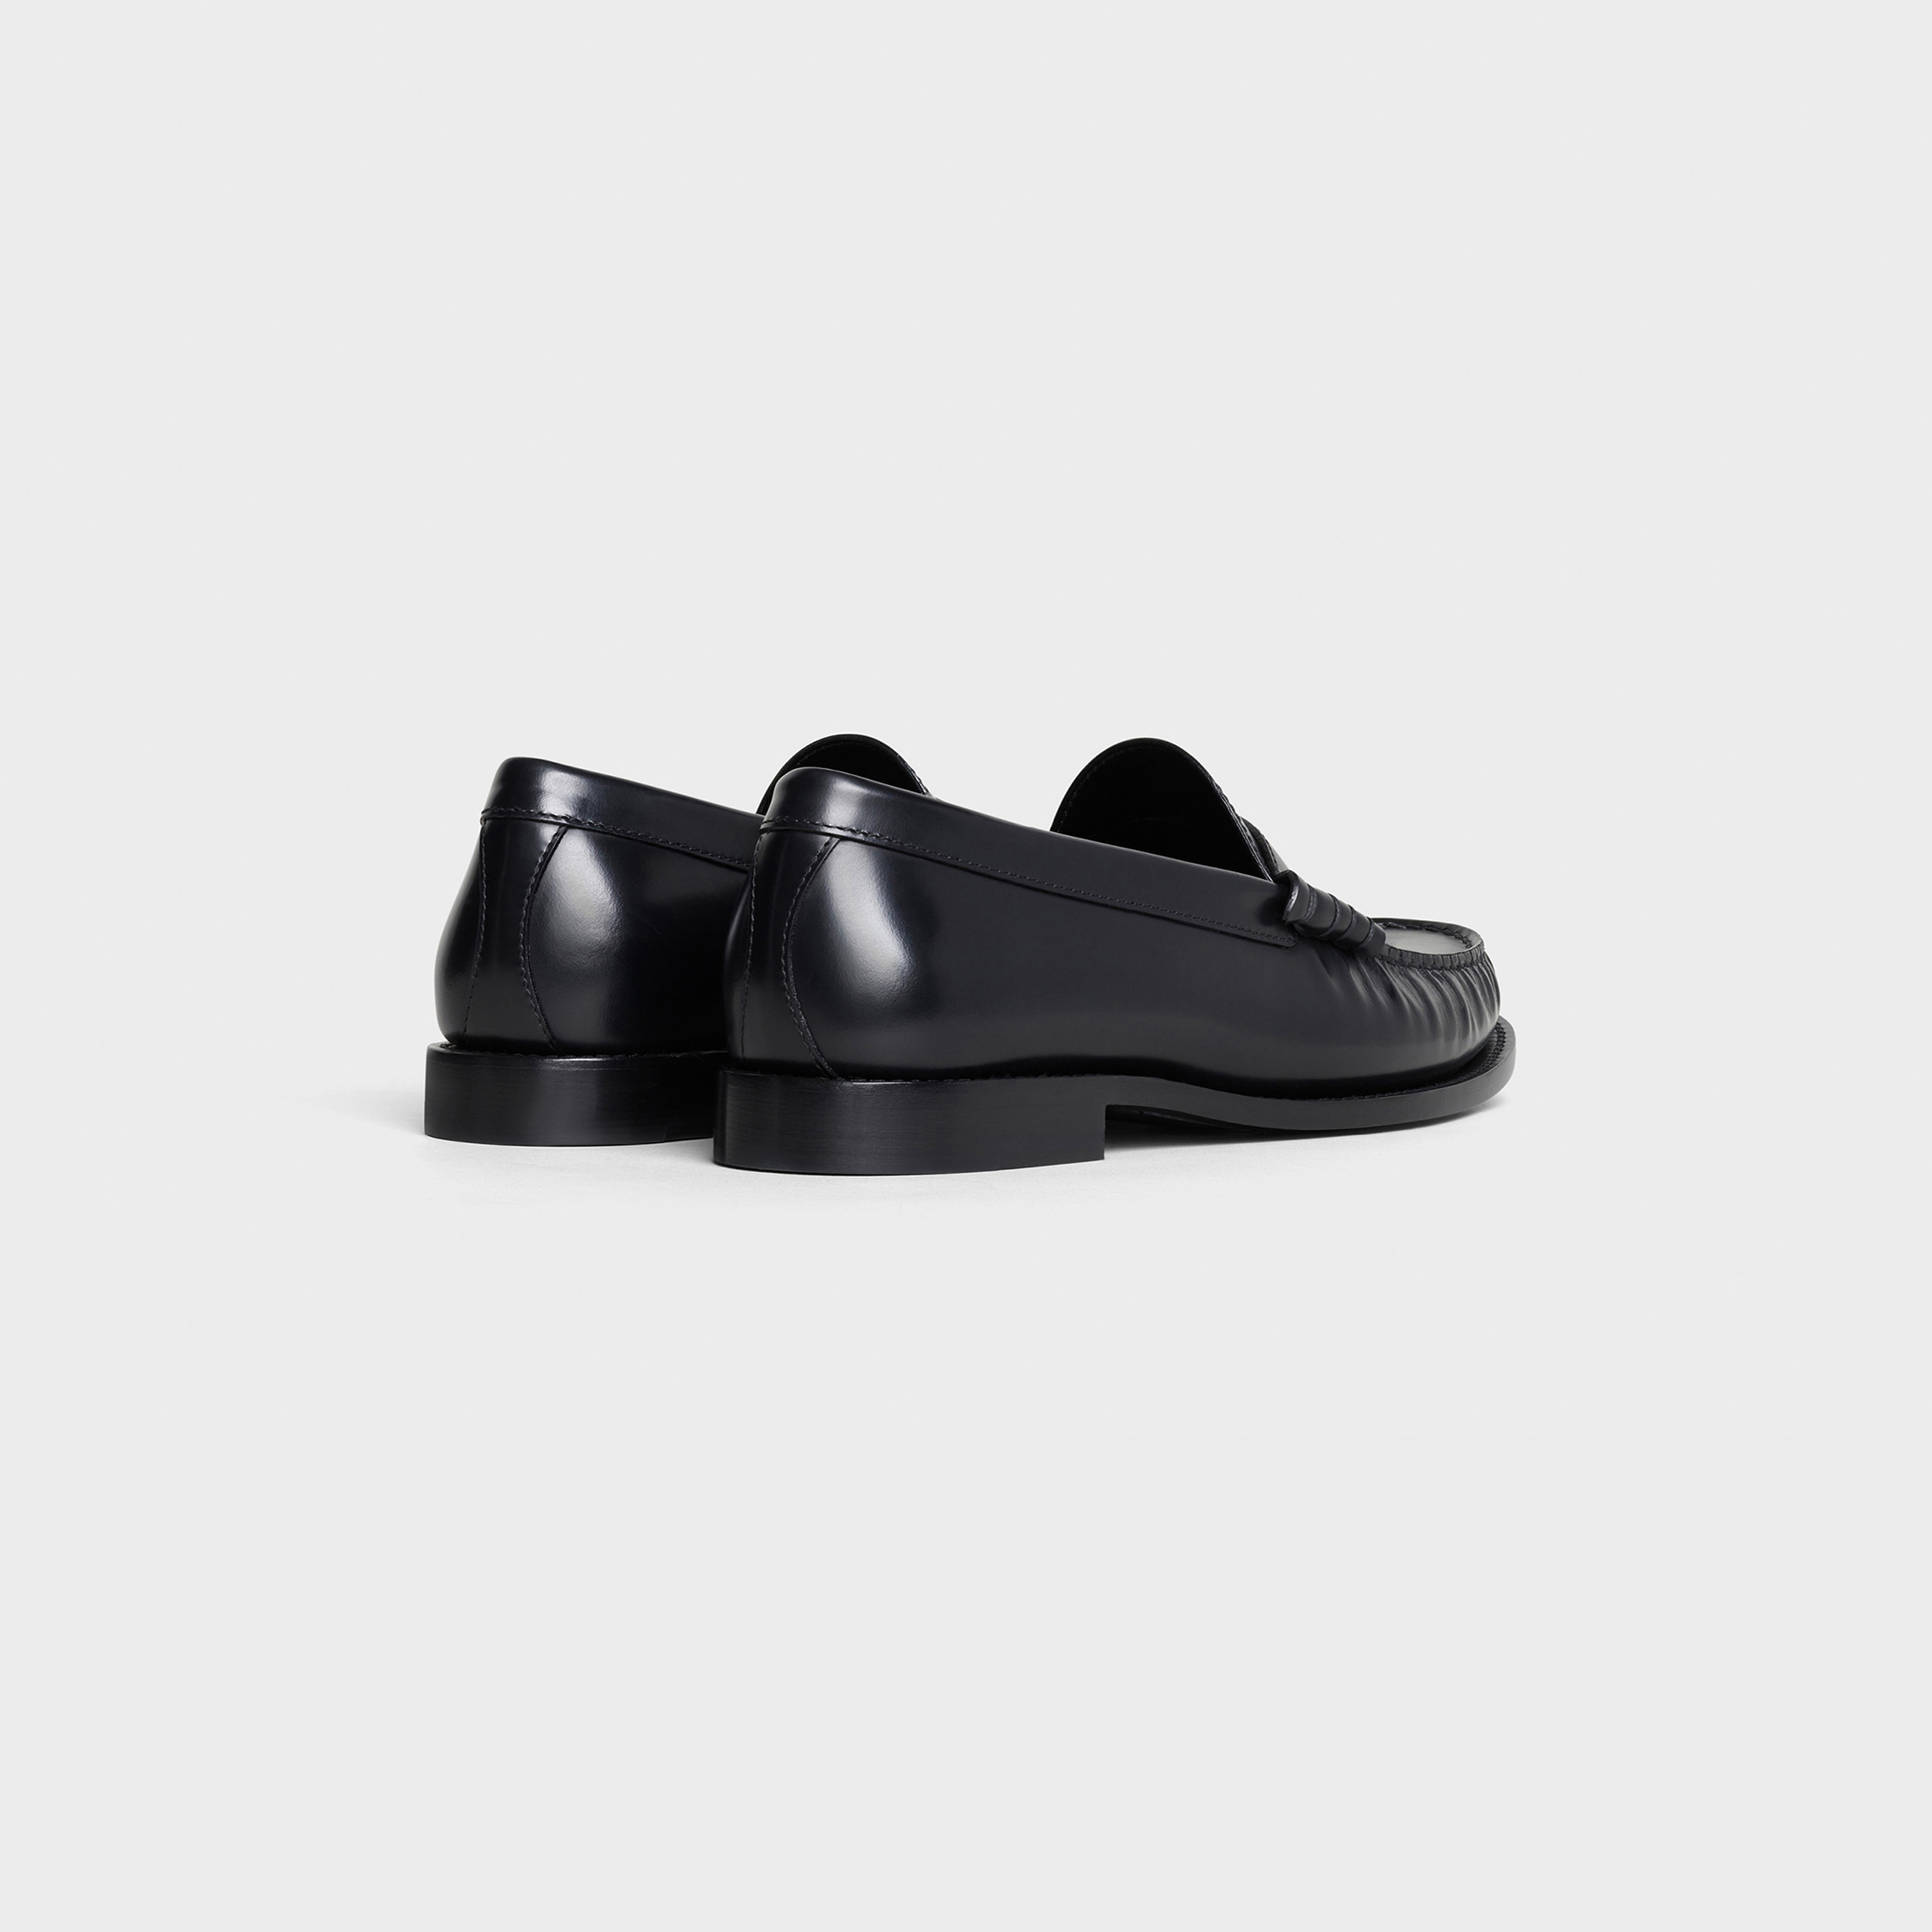 CELINE LUCO Loafer in Polished Calfskin | CELINE